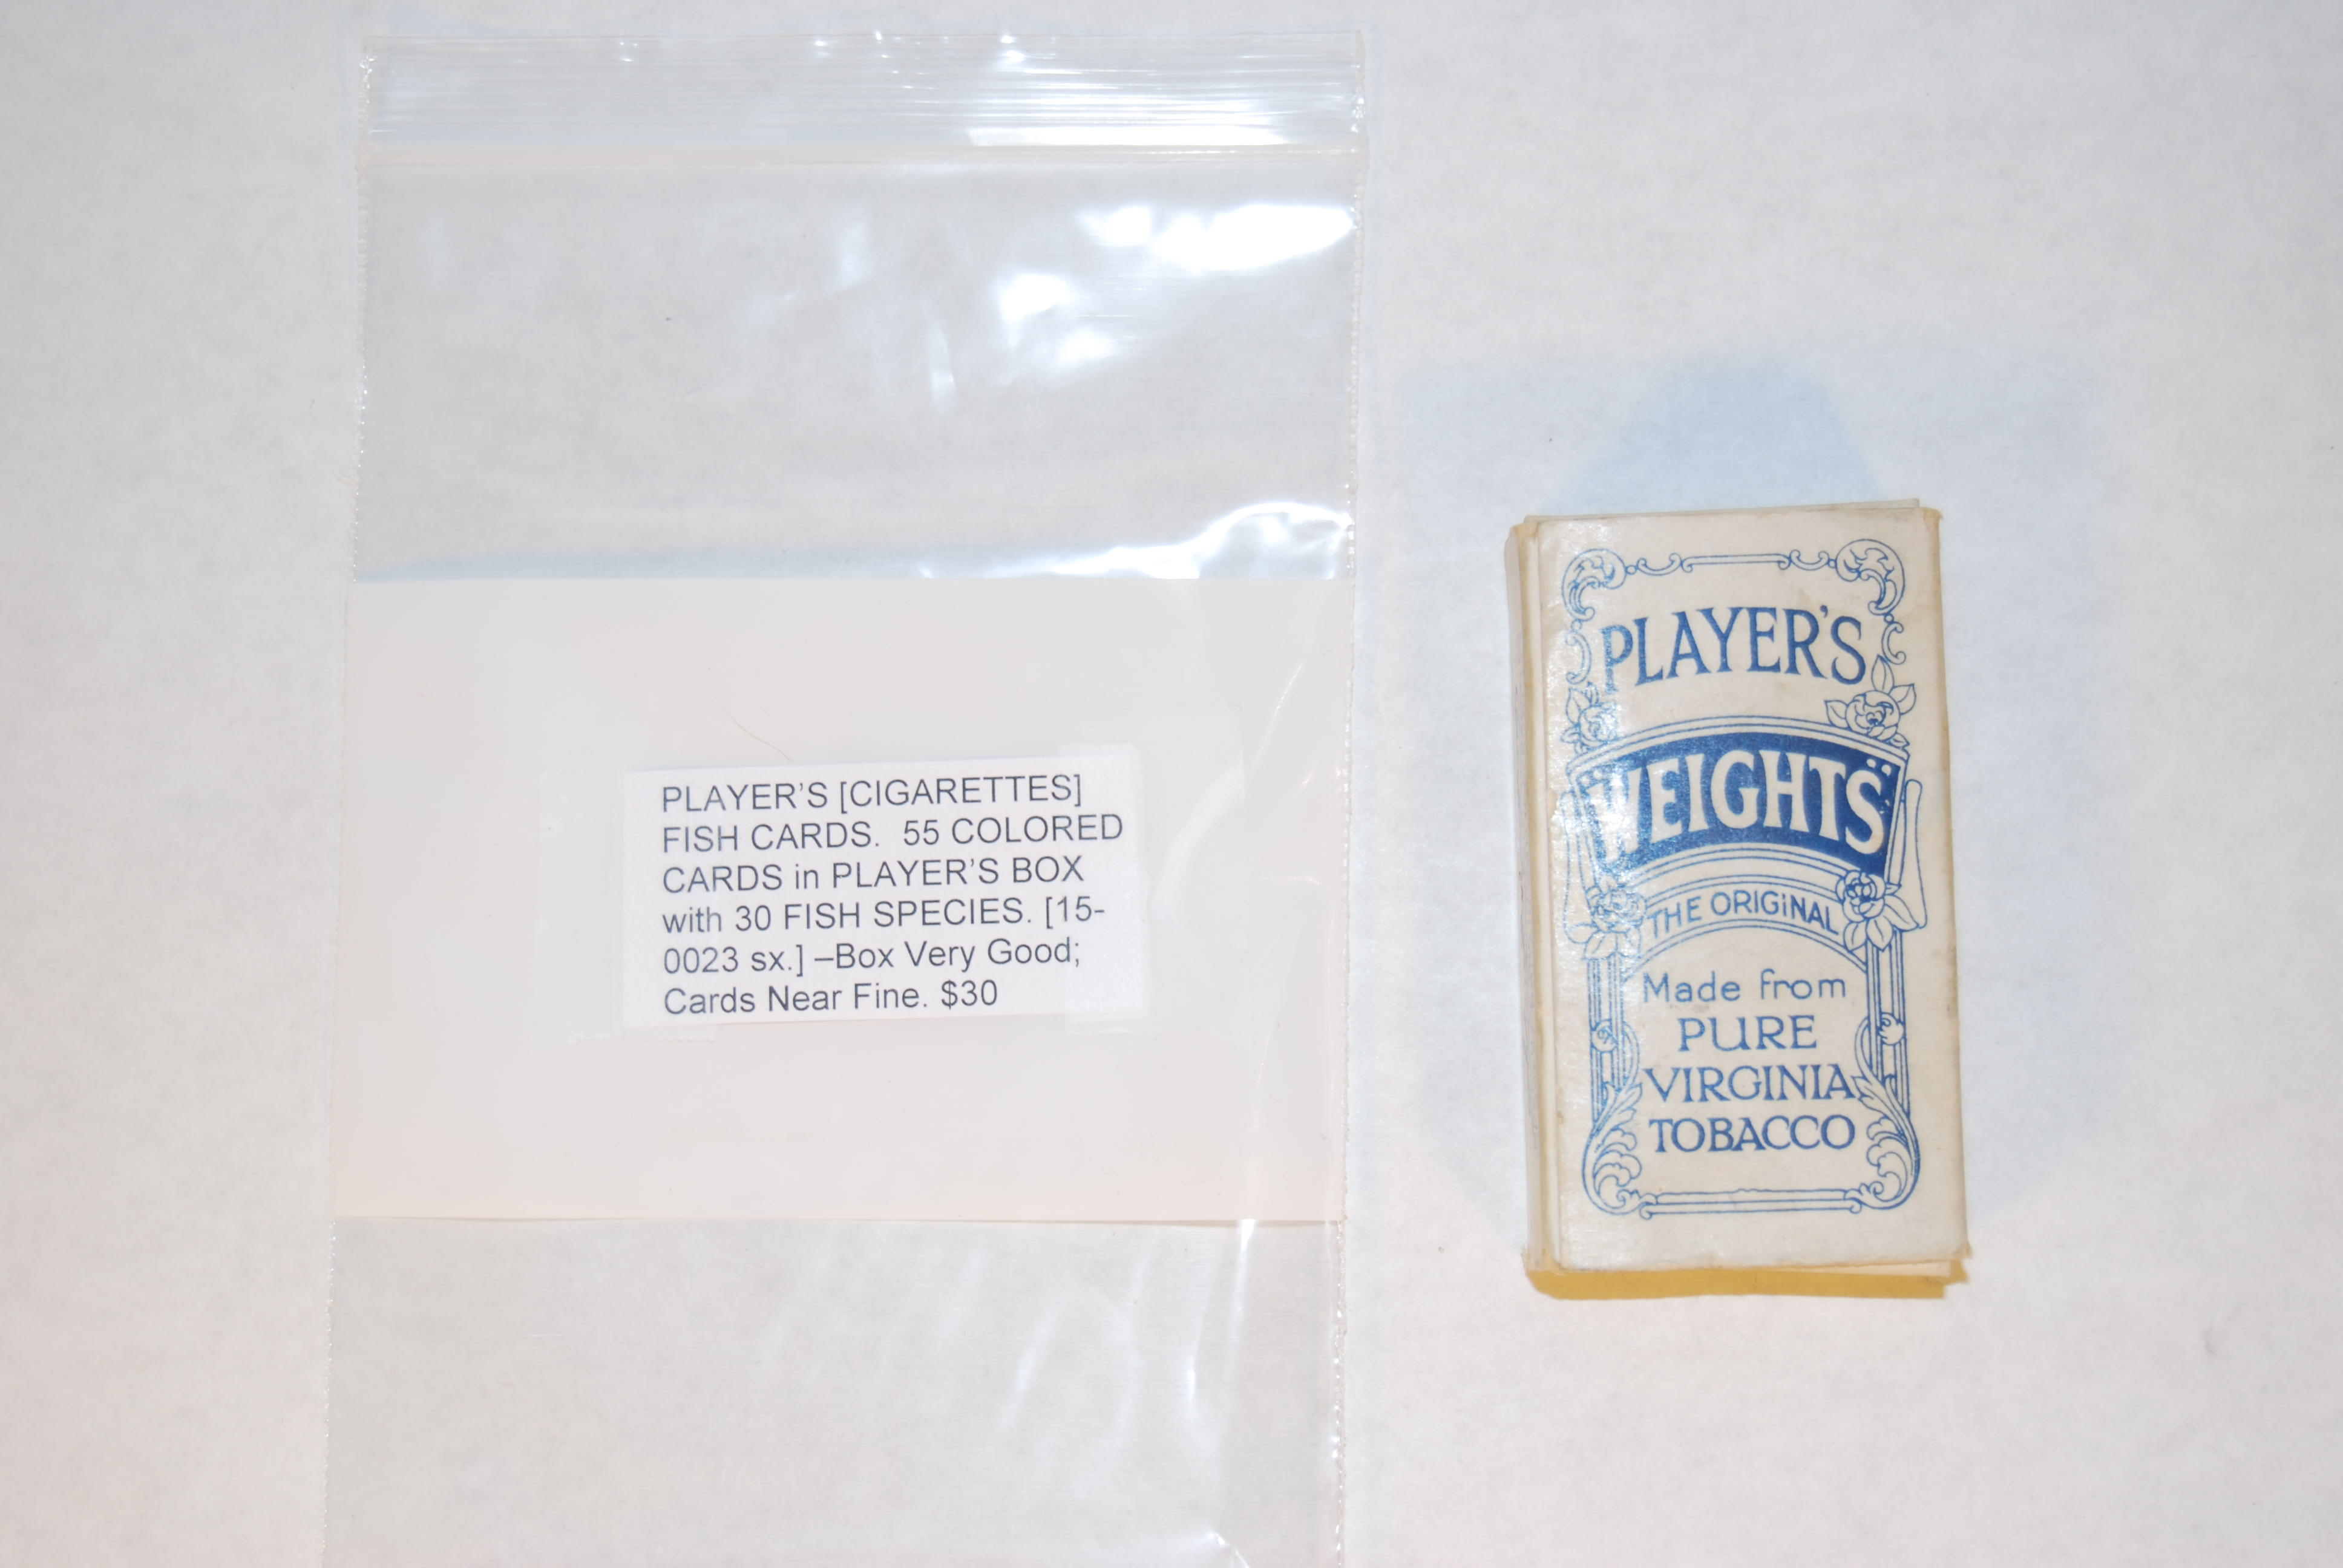 Image for PLAYER'S [CIGARETTES] FISH CARDS.  55 COLORED CARDS in PLAYER'S BOX with 30 FISH SPECIES.